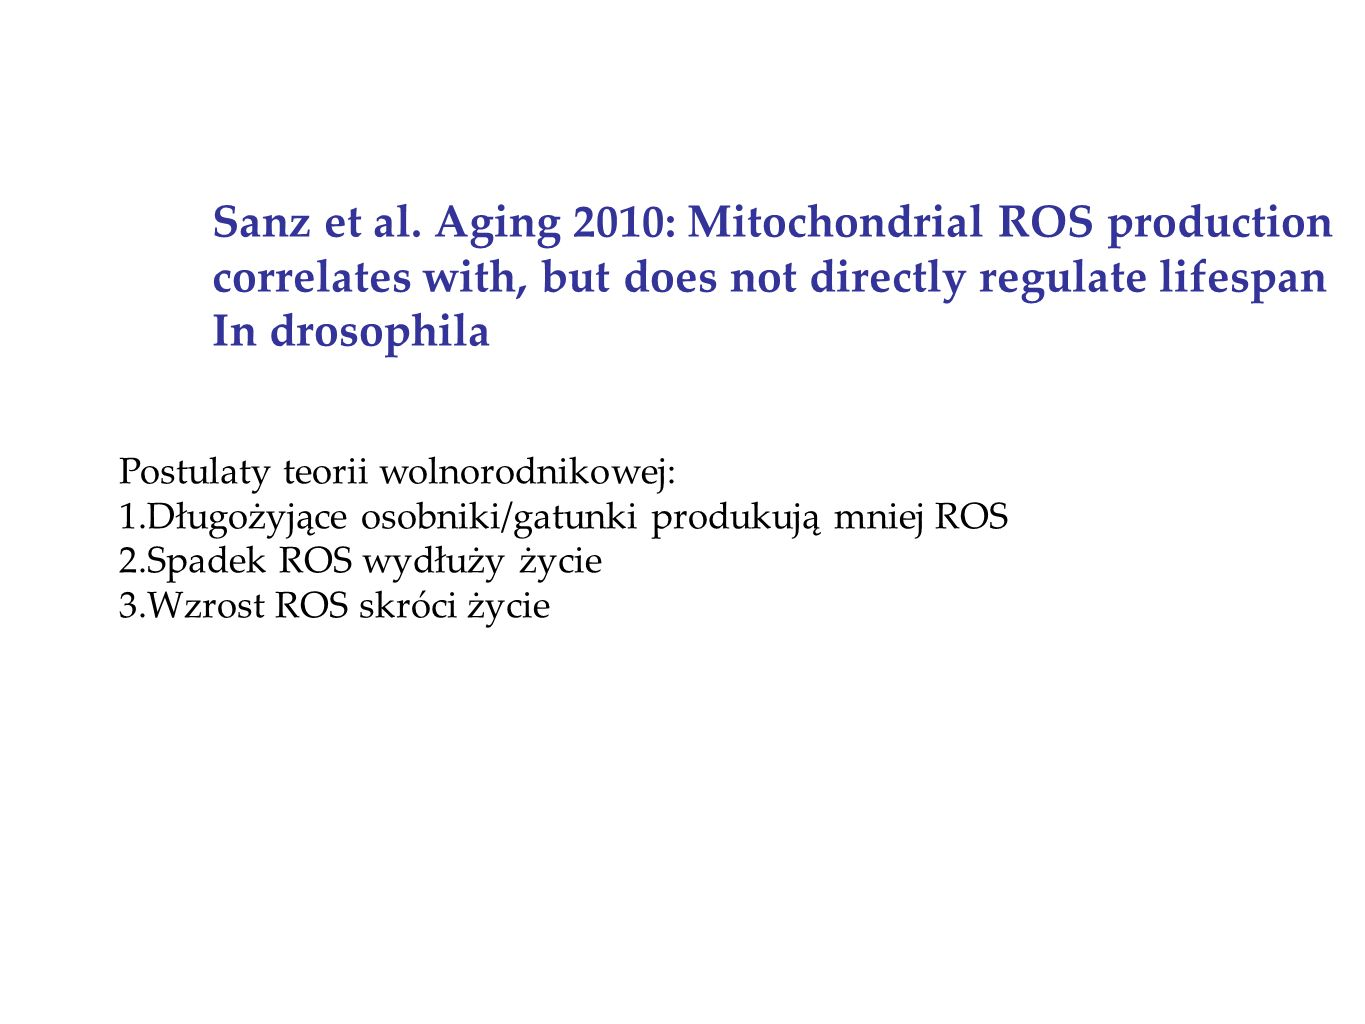 Sanz et al. Aging 2010: Mitochondrial ROS production correlates with, but does not directly regulate lifespan In drosophila Postulaty teorii wolnorodn